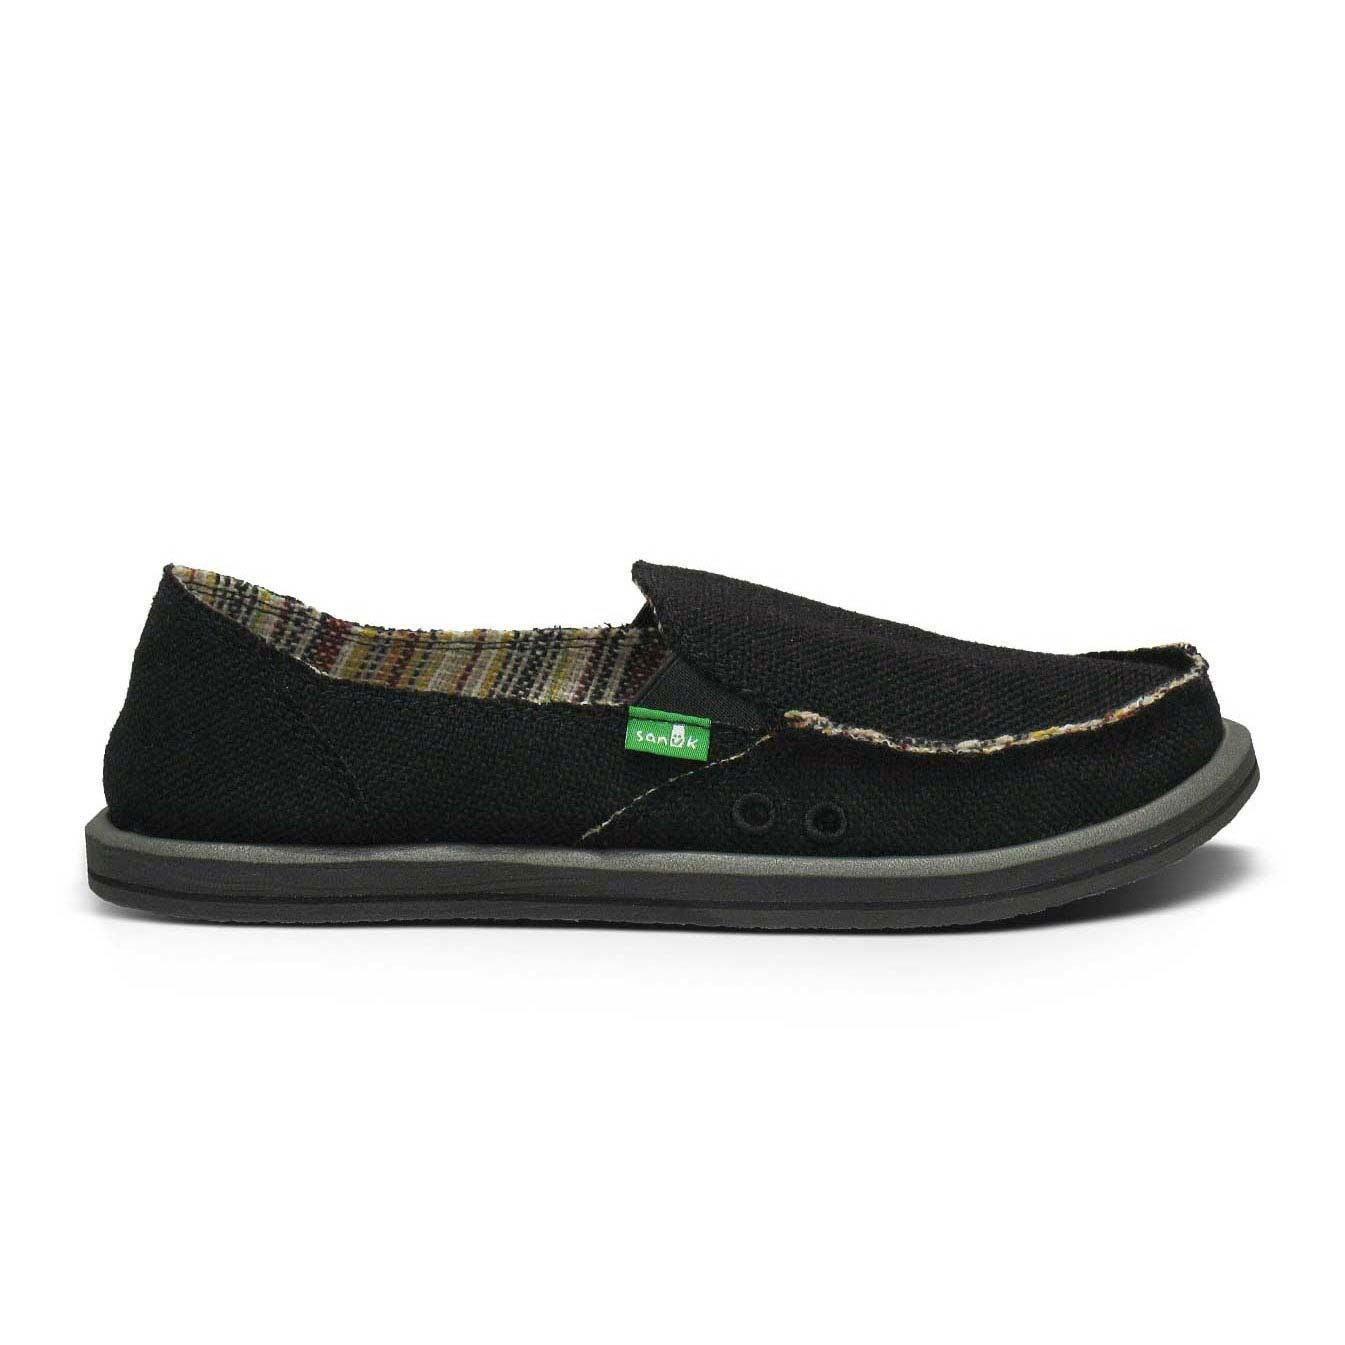 Sanuk® Vagabond Tripper Sidewalk Surfer Slip-On Shoes have the look and feel of your favorite loafers from day one. These Sanuk sidewalk surfers are made of heavy-duty woven canvas with a .